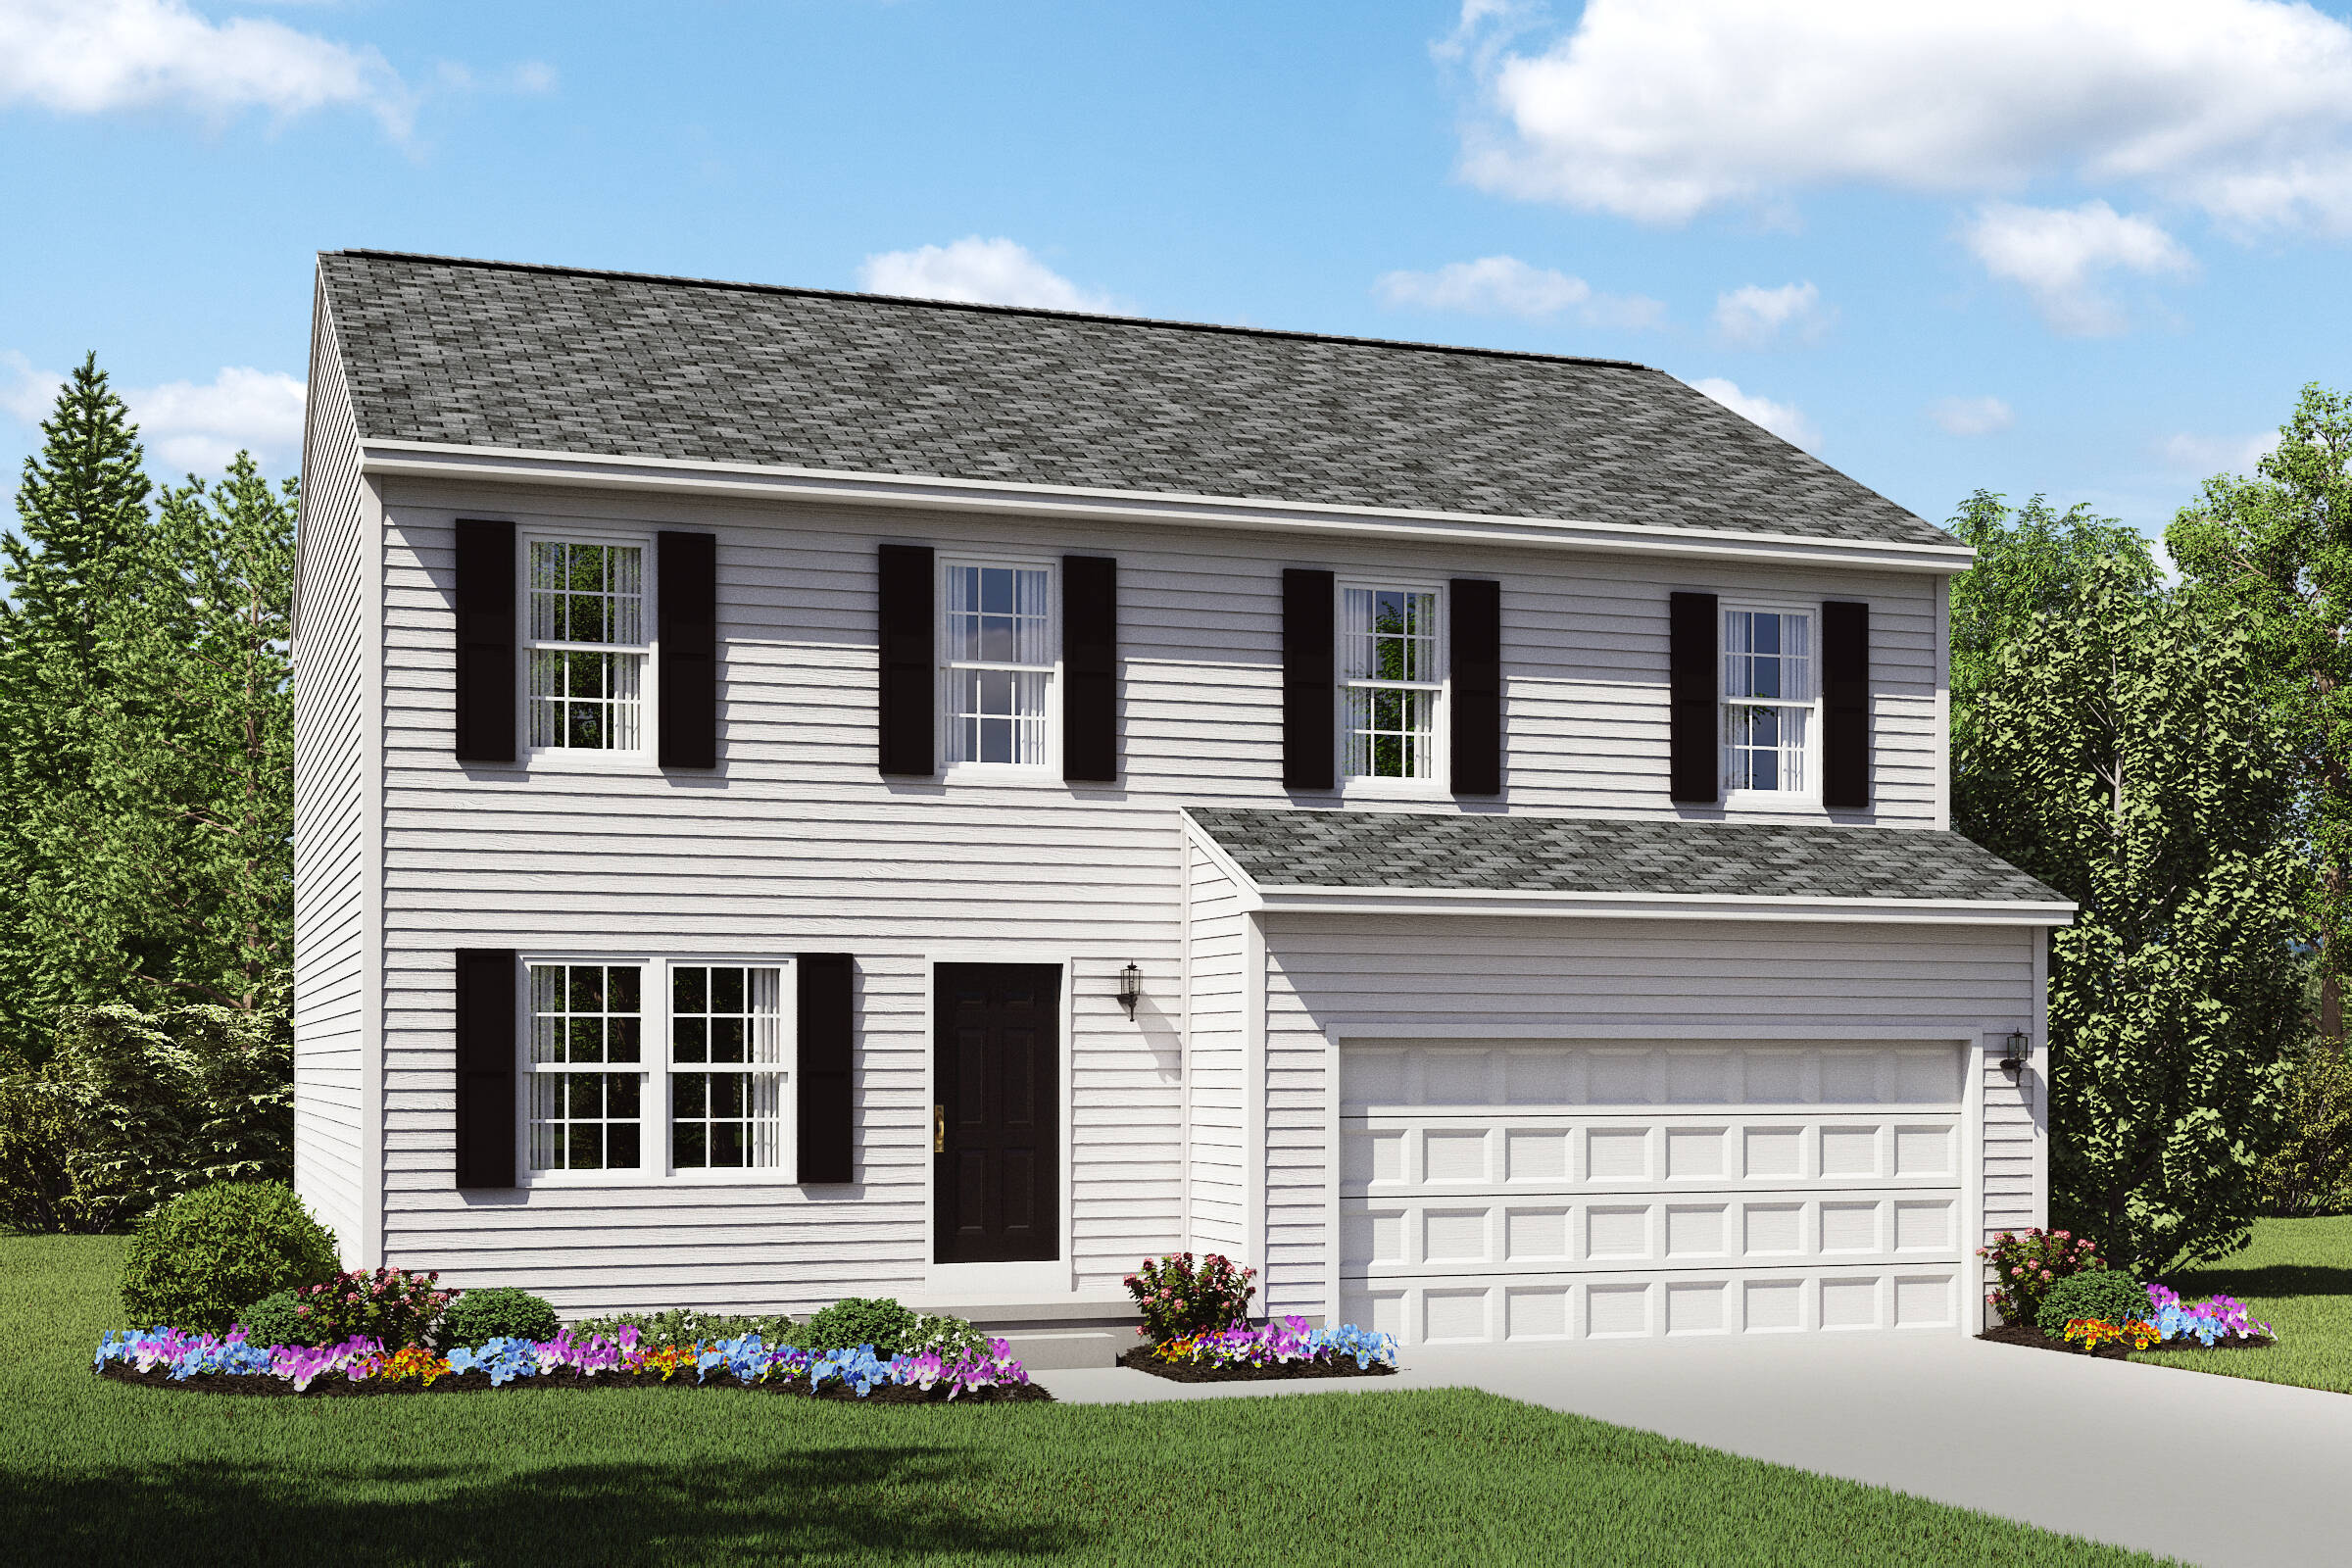 new home in lorain with tax abatement no amherst schools